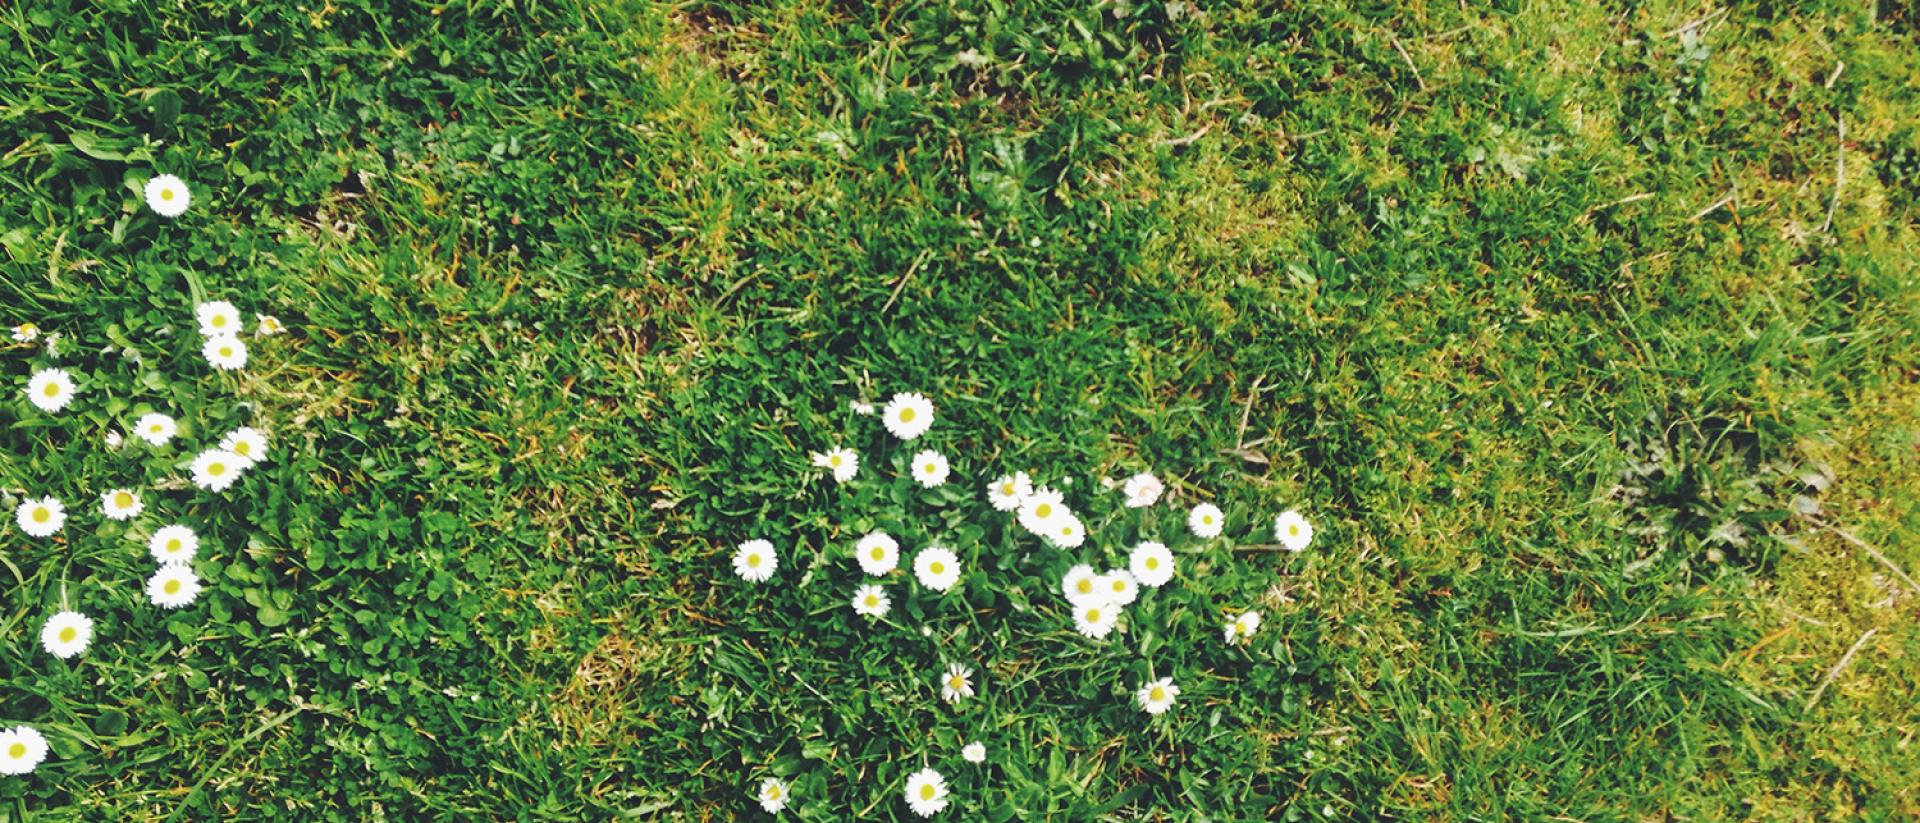 Image of grass with daisies.